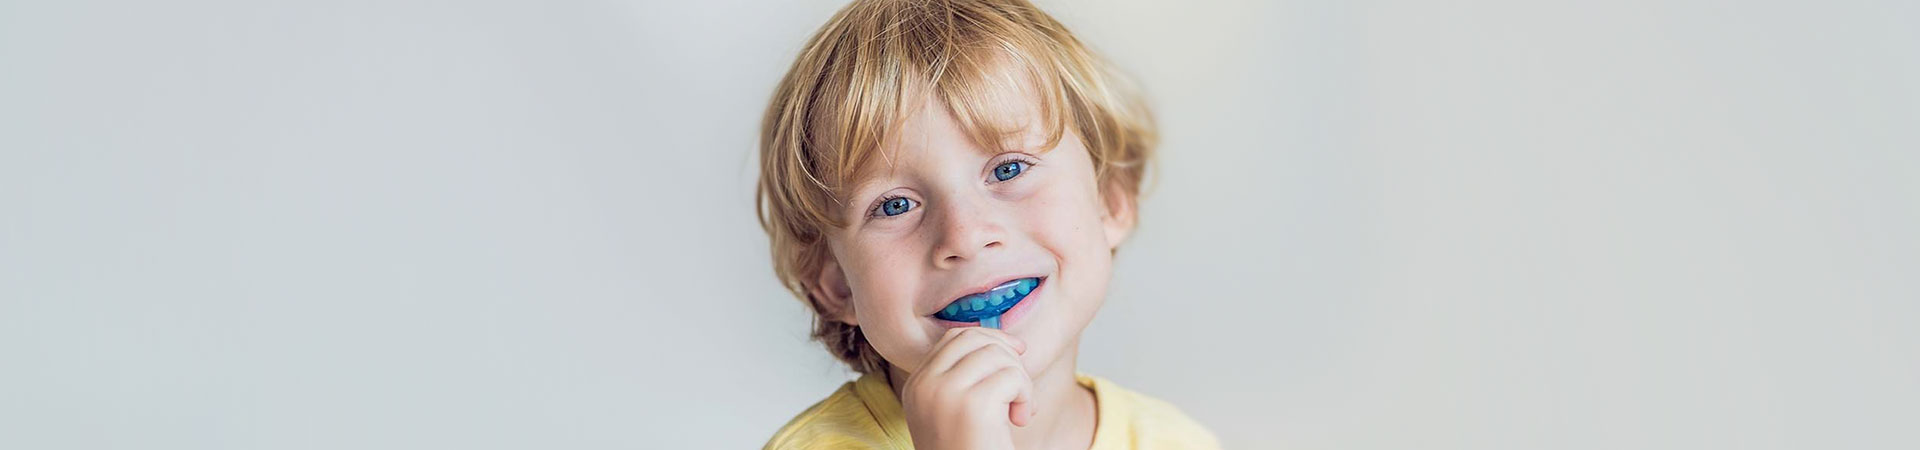 Boy with nightguard in his mouth.